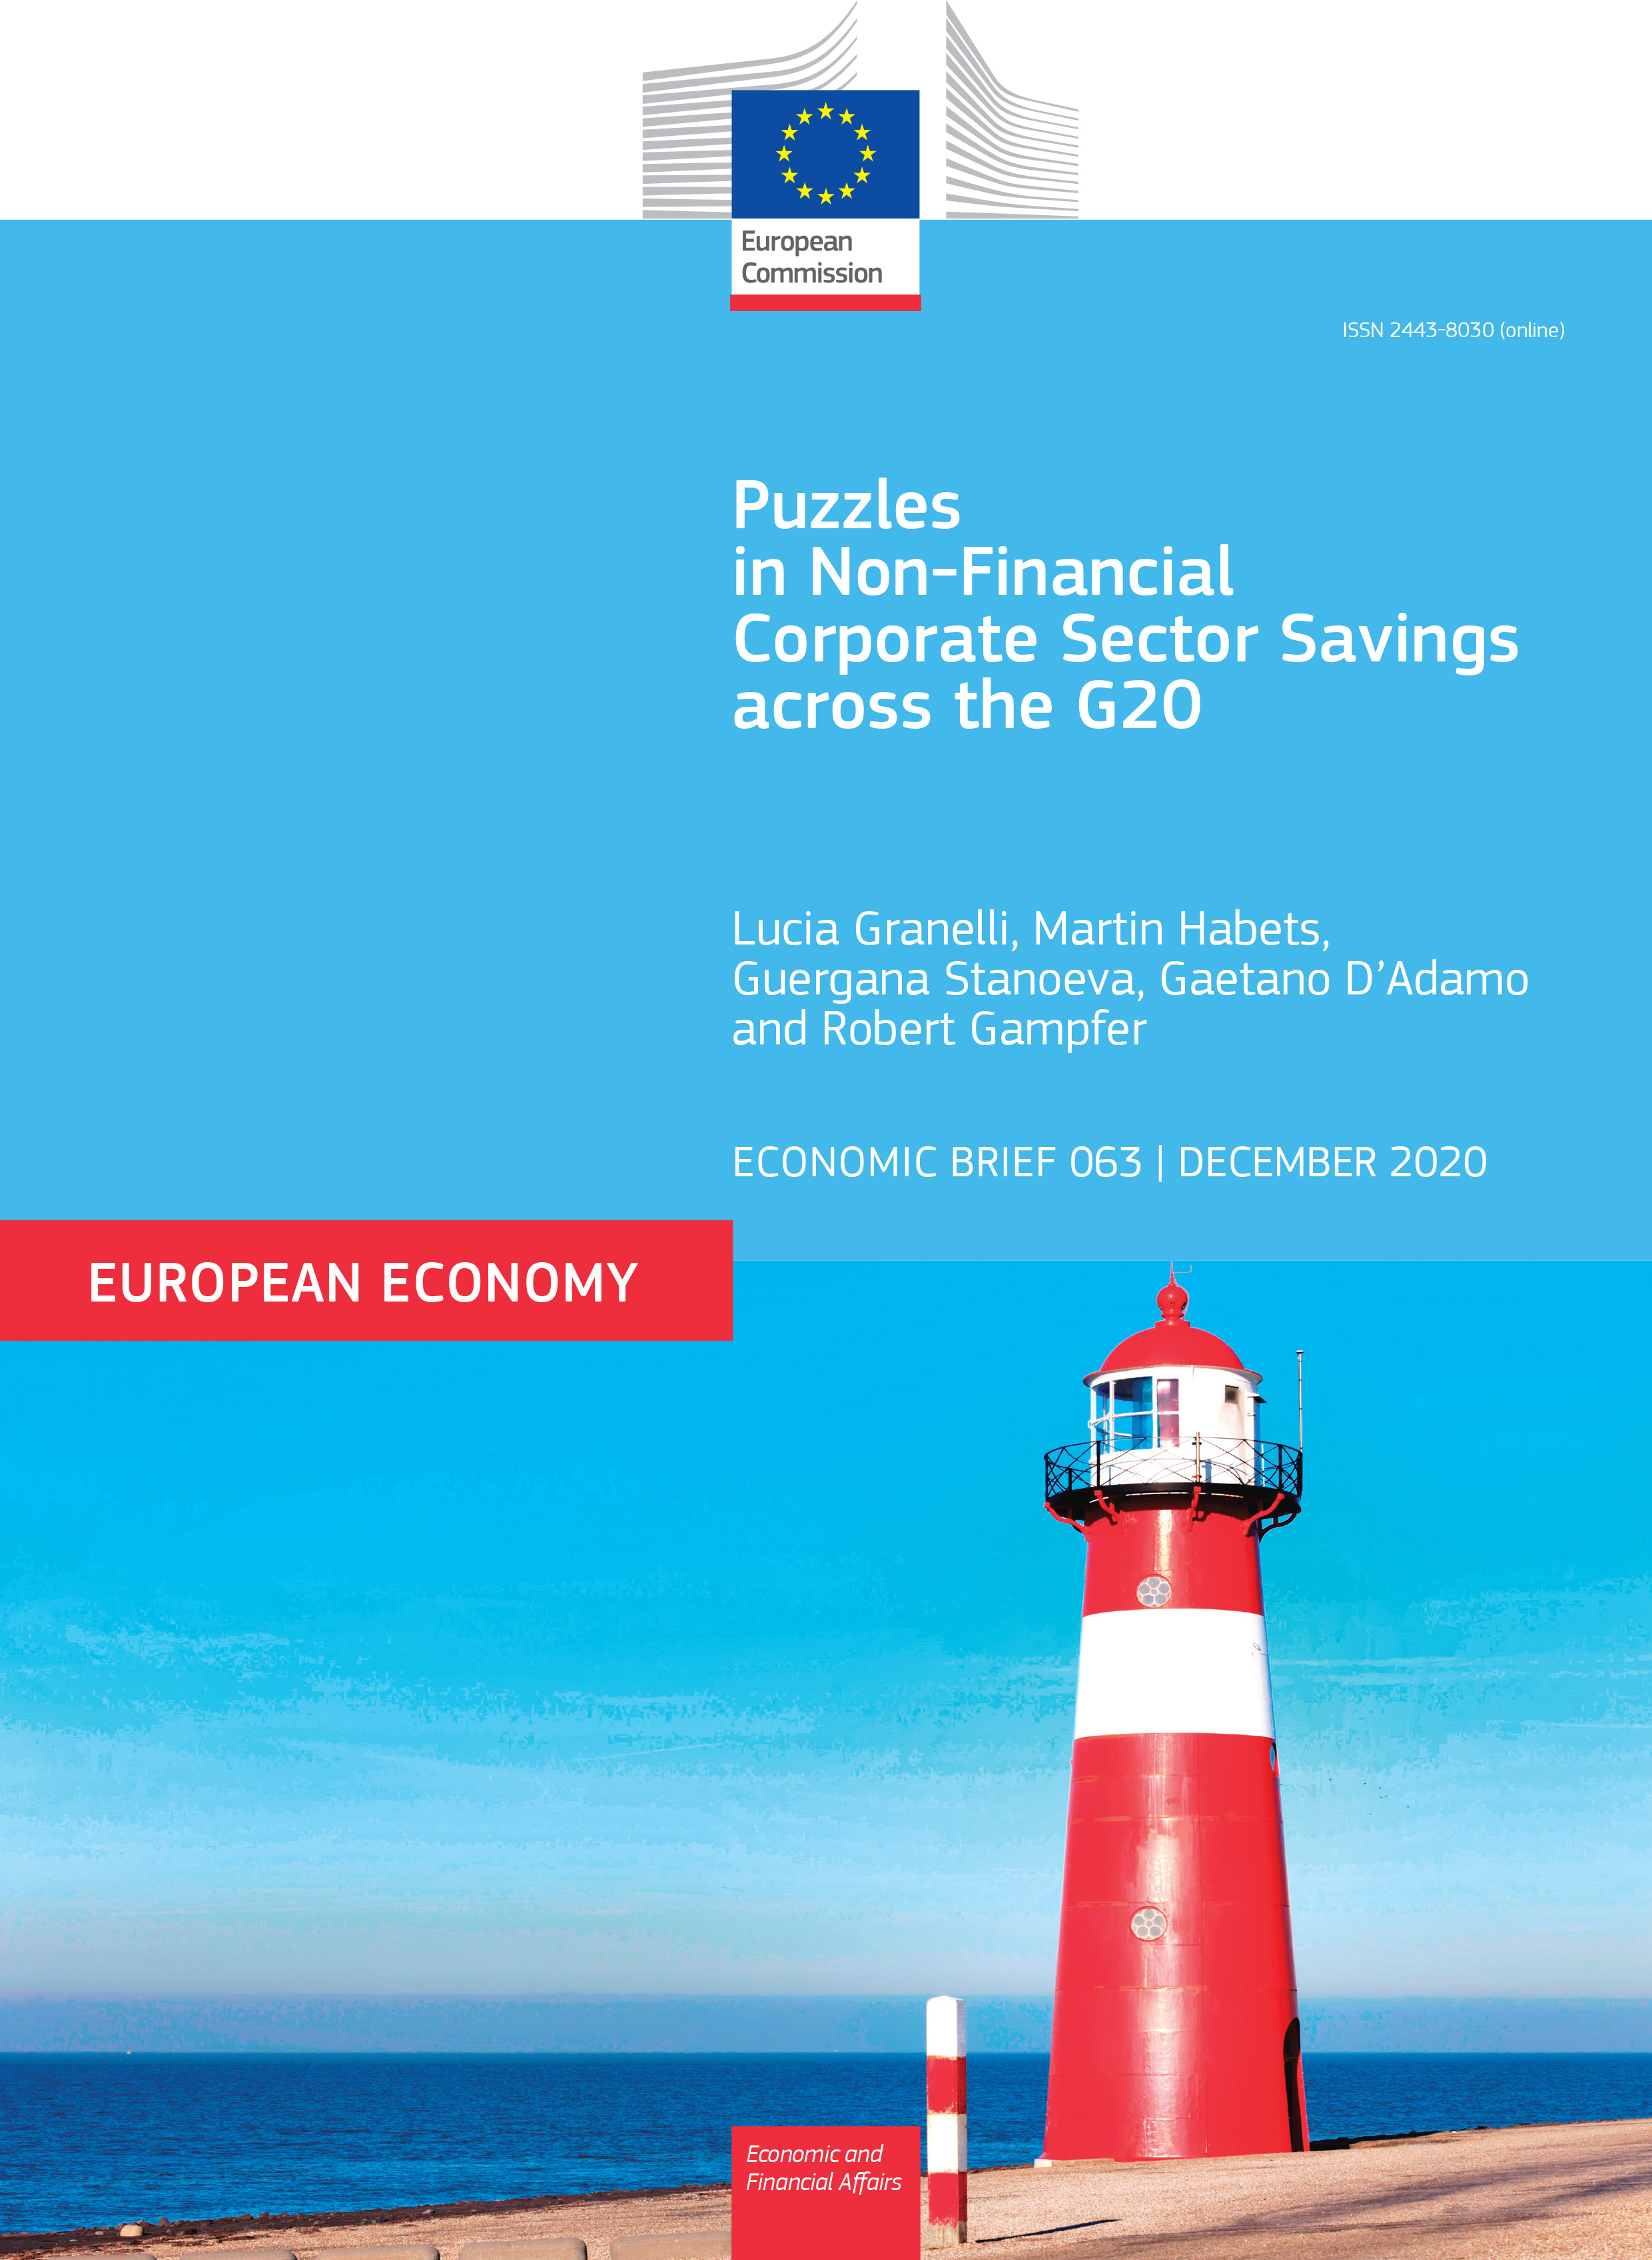 Puzzles in Non-Financial Corporate Sector Savings across the G20